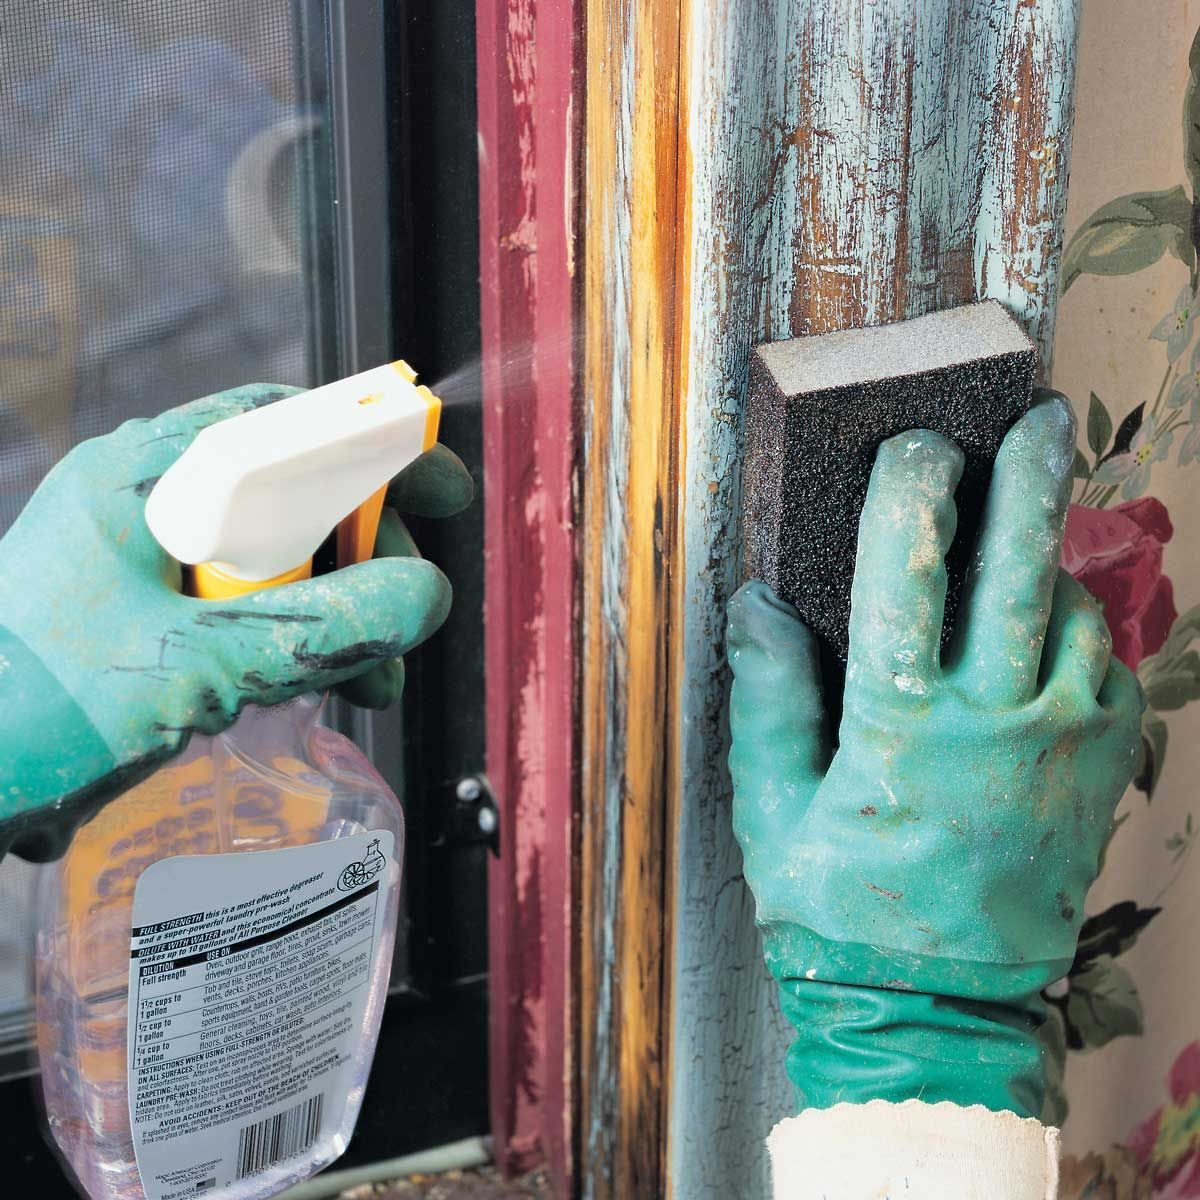 How To Remove Lead Paint Safely Lead Paint Lead Paint Removal Home Safety